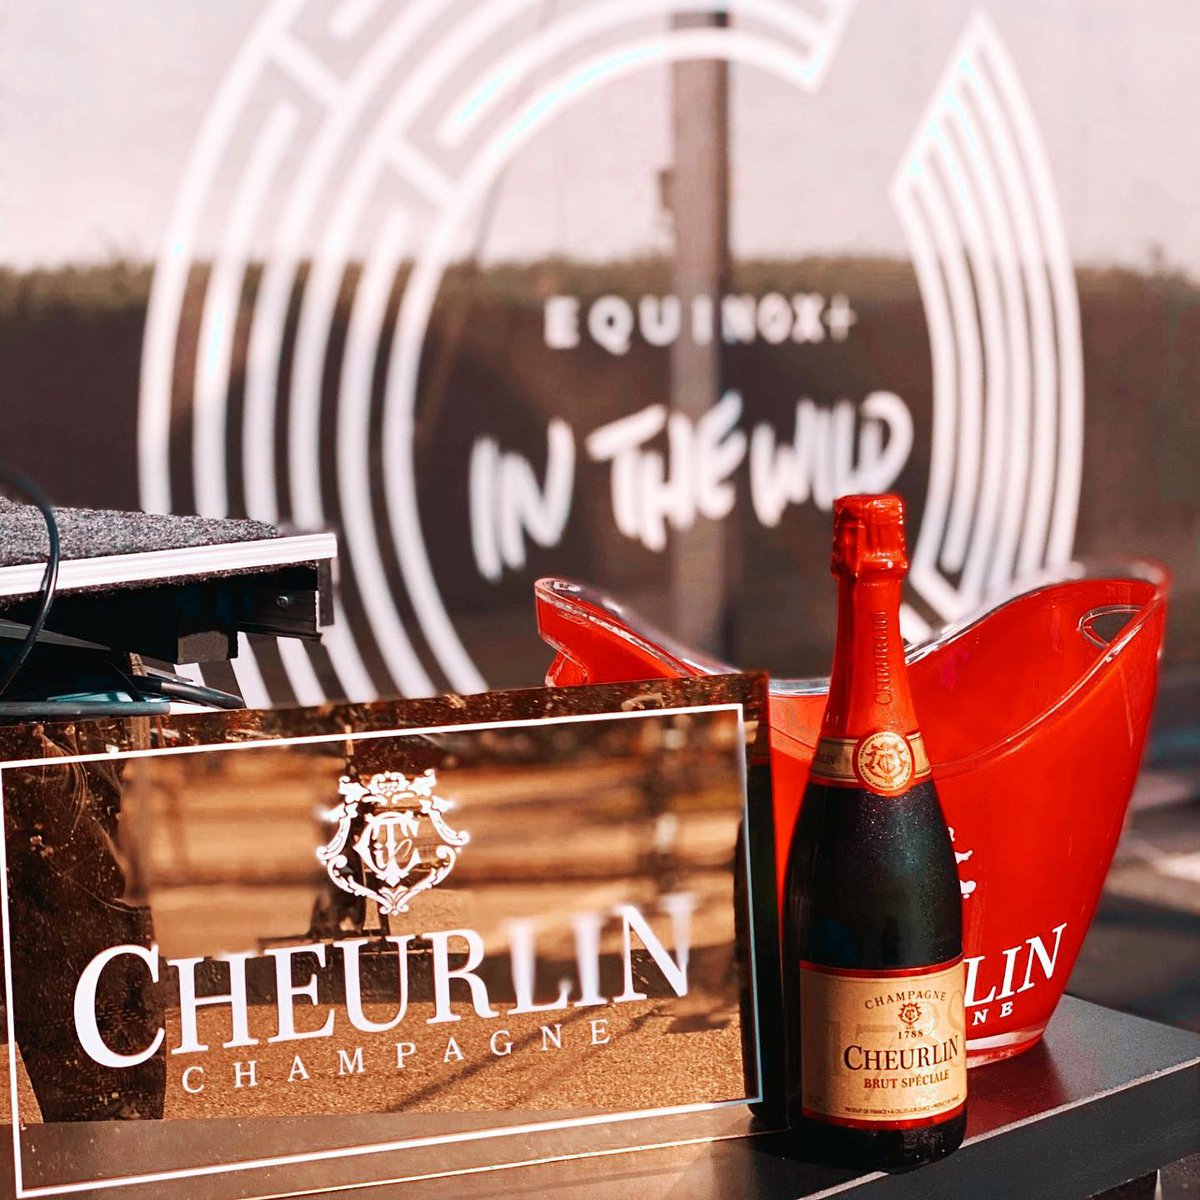 Had the best time at the socially distanced @equinox event! & nothing like champagne after a workout 😊 #Cheurlin1788 #CheurlinMoments 📸 @fyparties